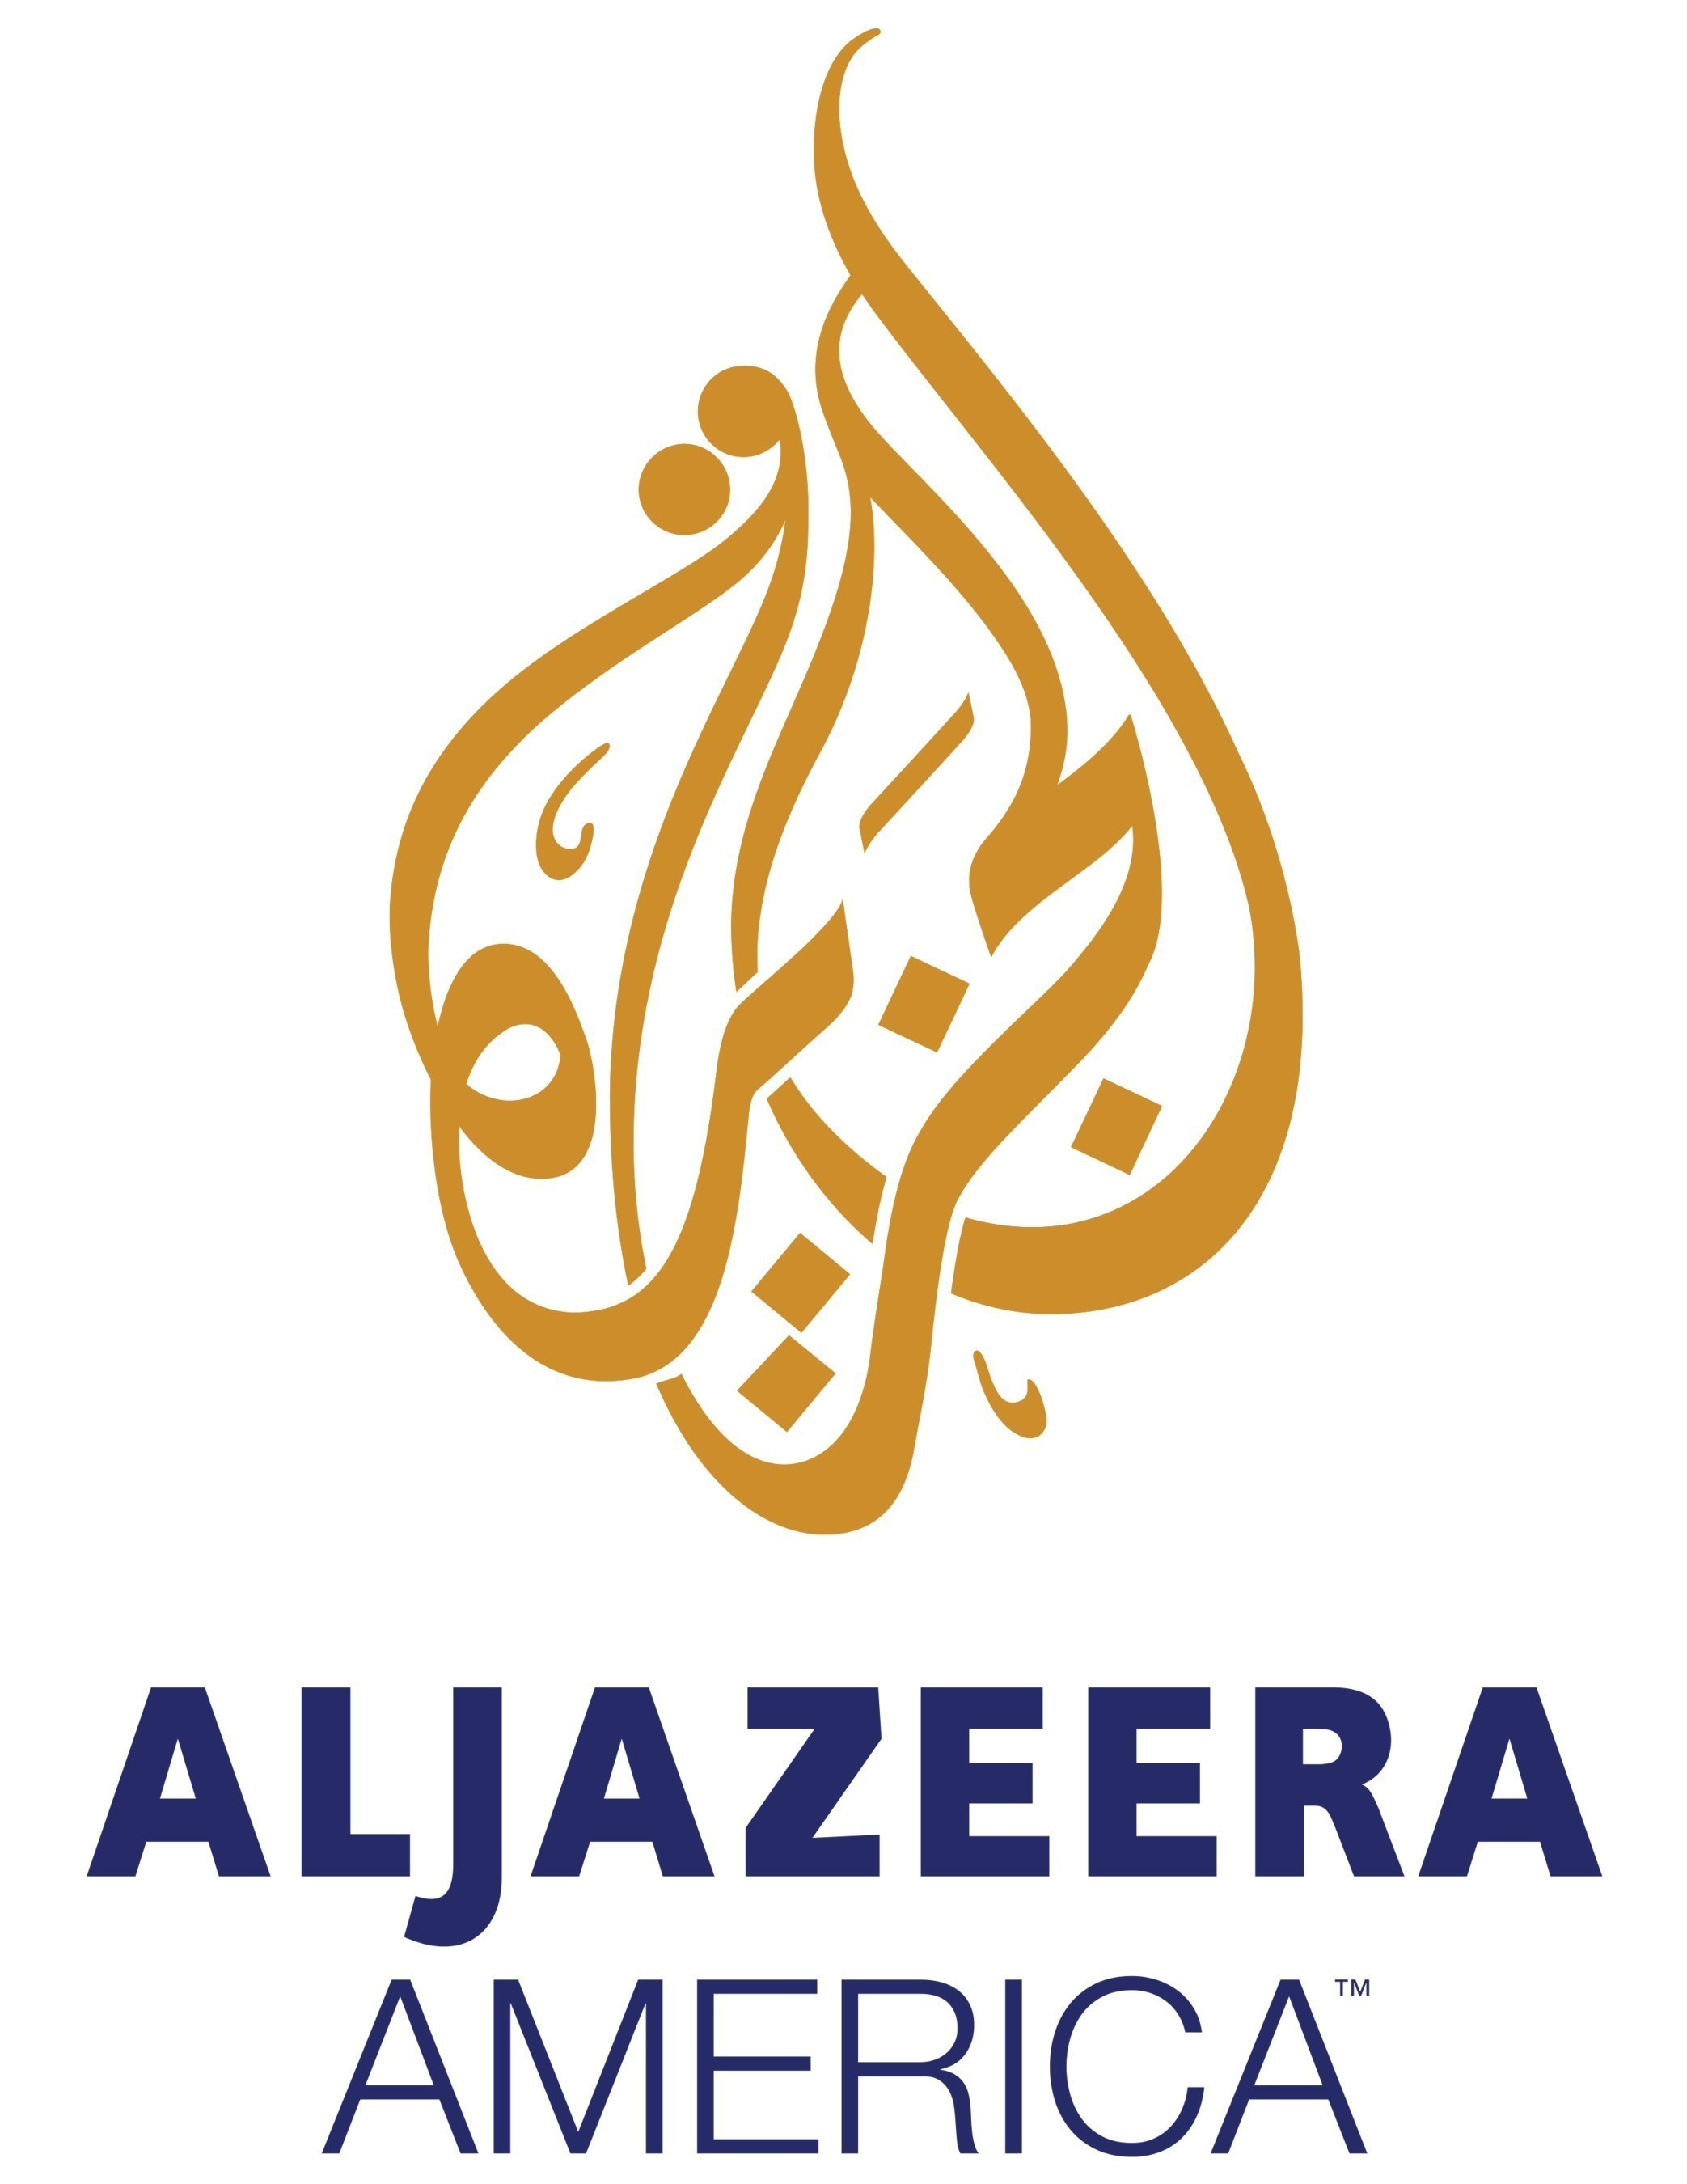 Al Jazeera America Announces Strategy For Covering 2016 Presidential Election